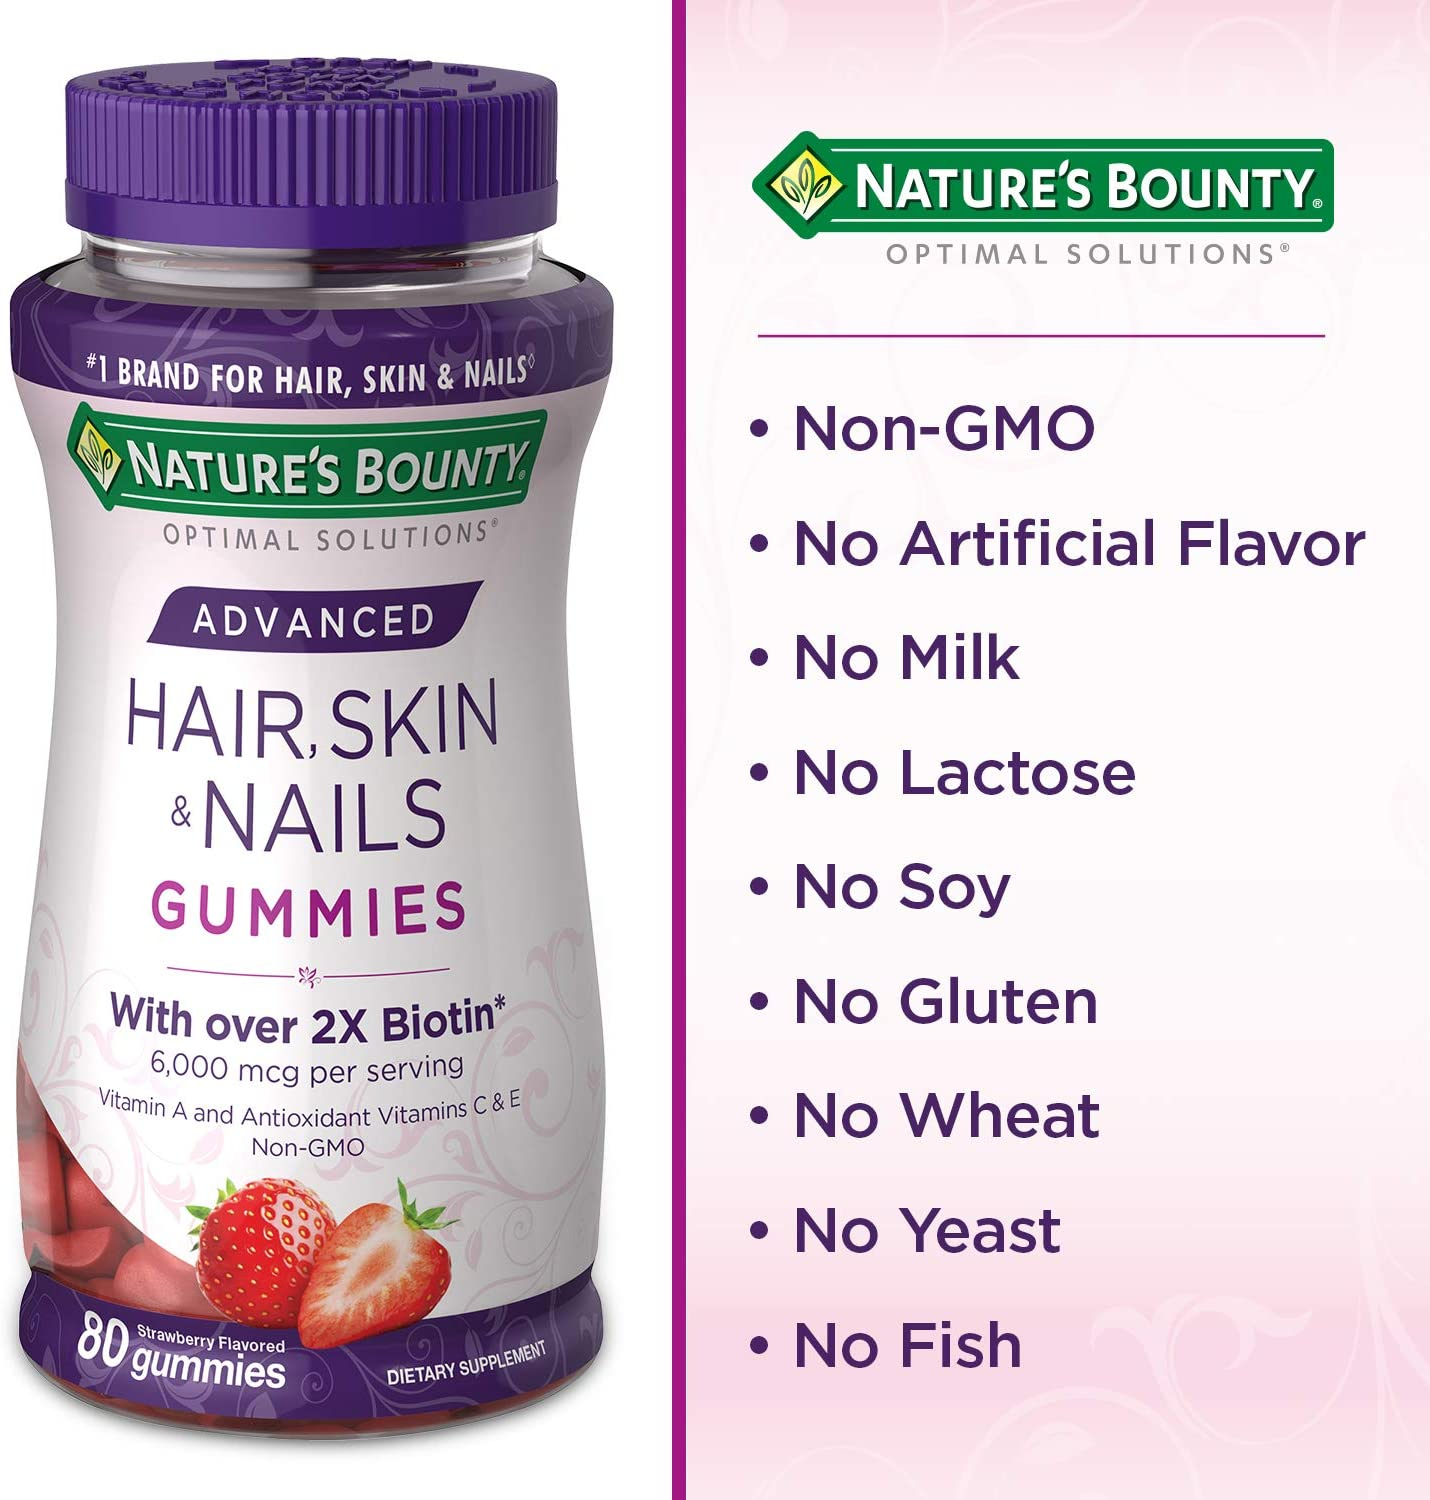 Nature's Bounty Optimal Solutions Advanced Hair, Skin & Nails Gummies,  Strawberry, Pack of 9 9 Count